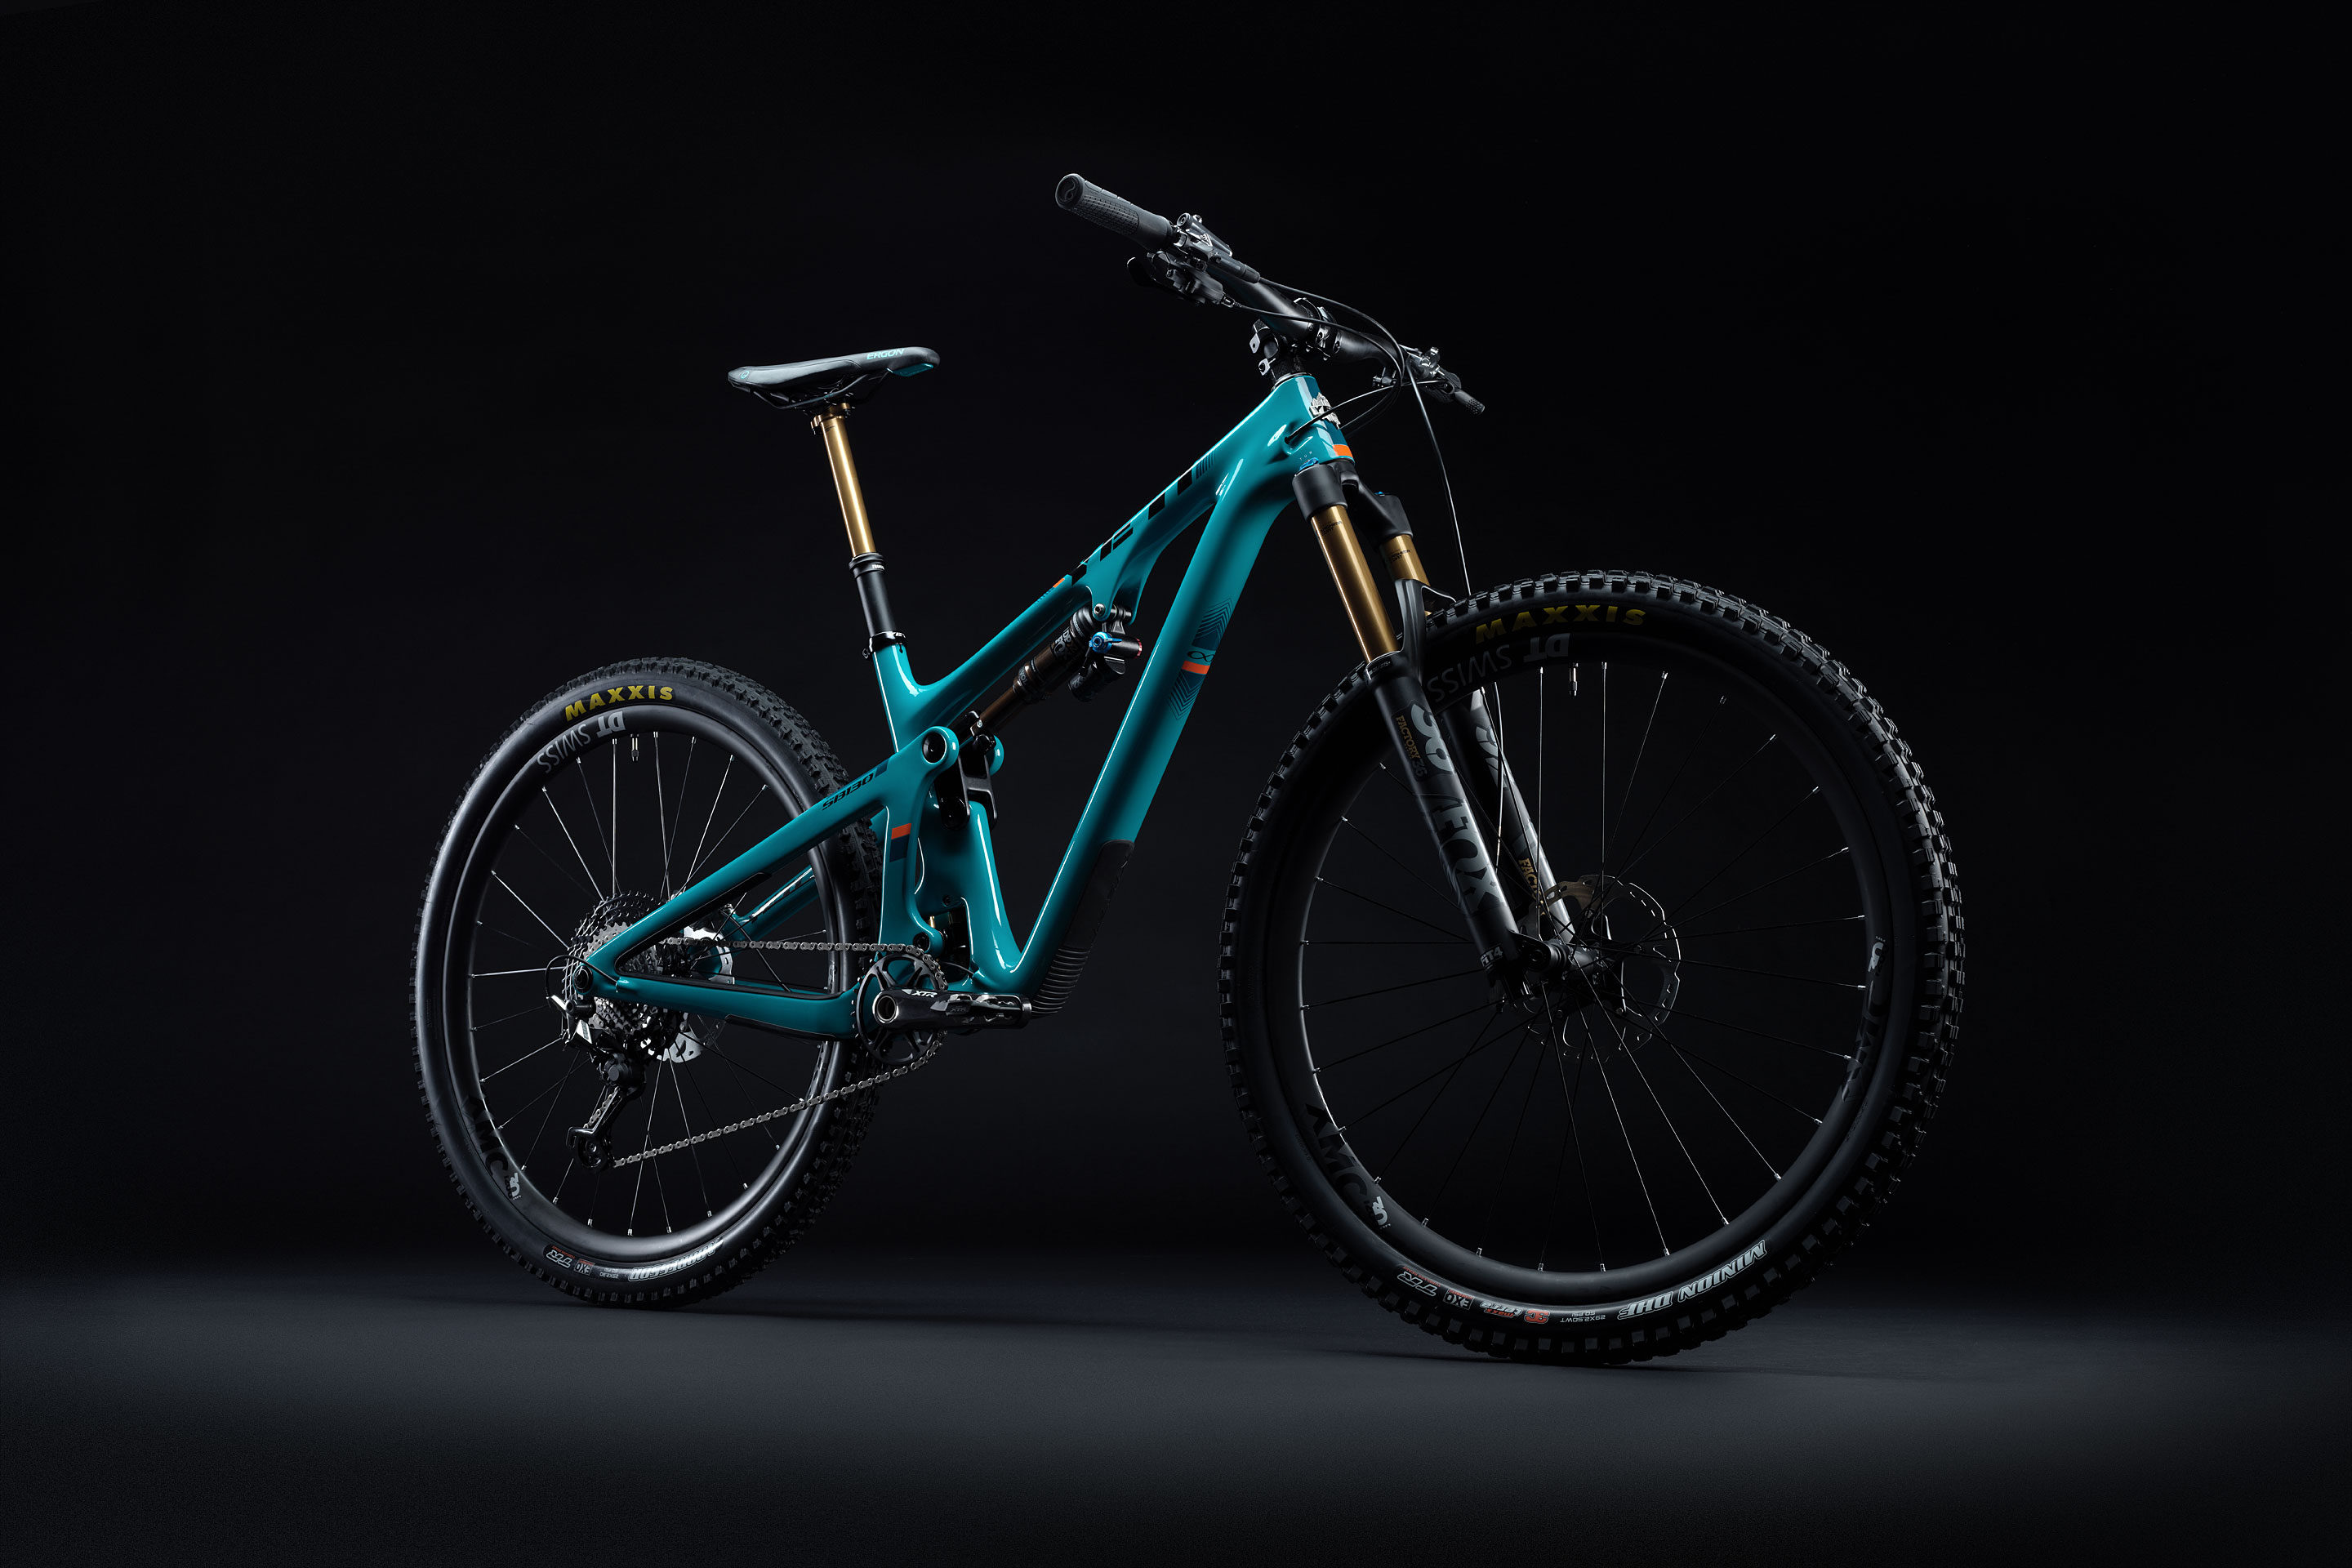 Yeti SB130 Review  Your Other Bikes Will Gather Dust  9dc5fca20